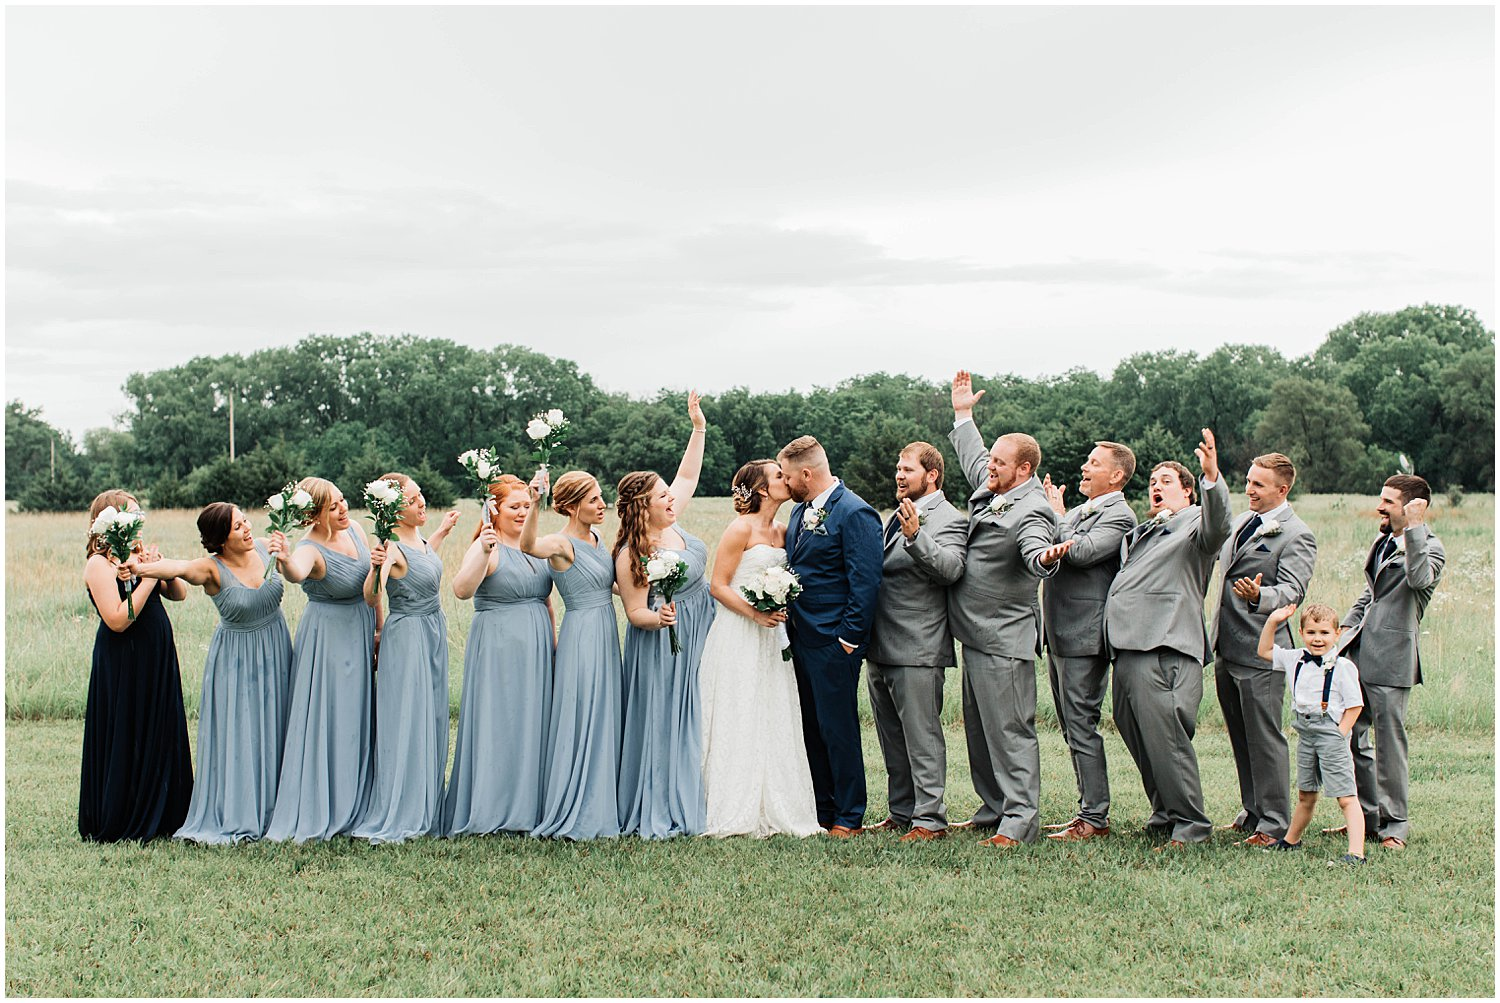 Rustic Timbers Wedding, Kansas Wedding Photographer, Wichita Kansas Wedding Photographer, outdoor wedding, traditional wedding, wedding photography, wedding inspiration, unique wedding photos, classic wedding photos